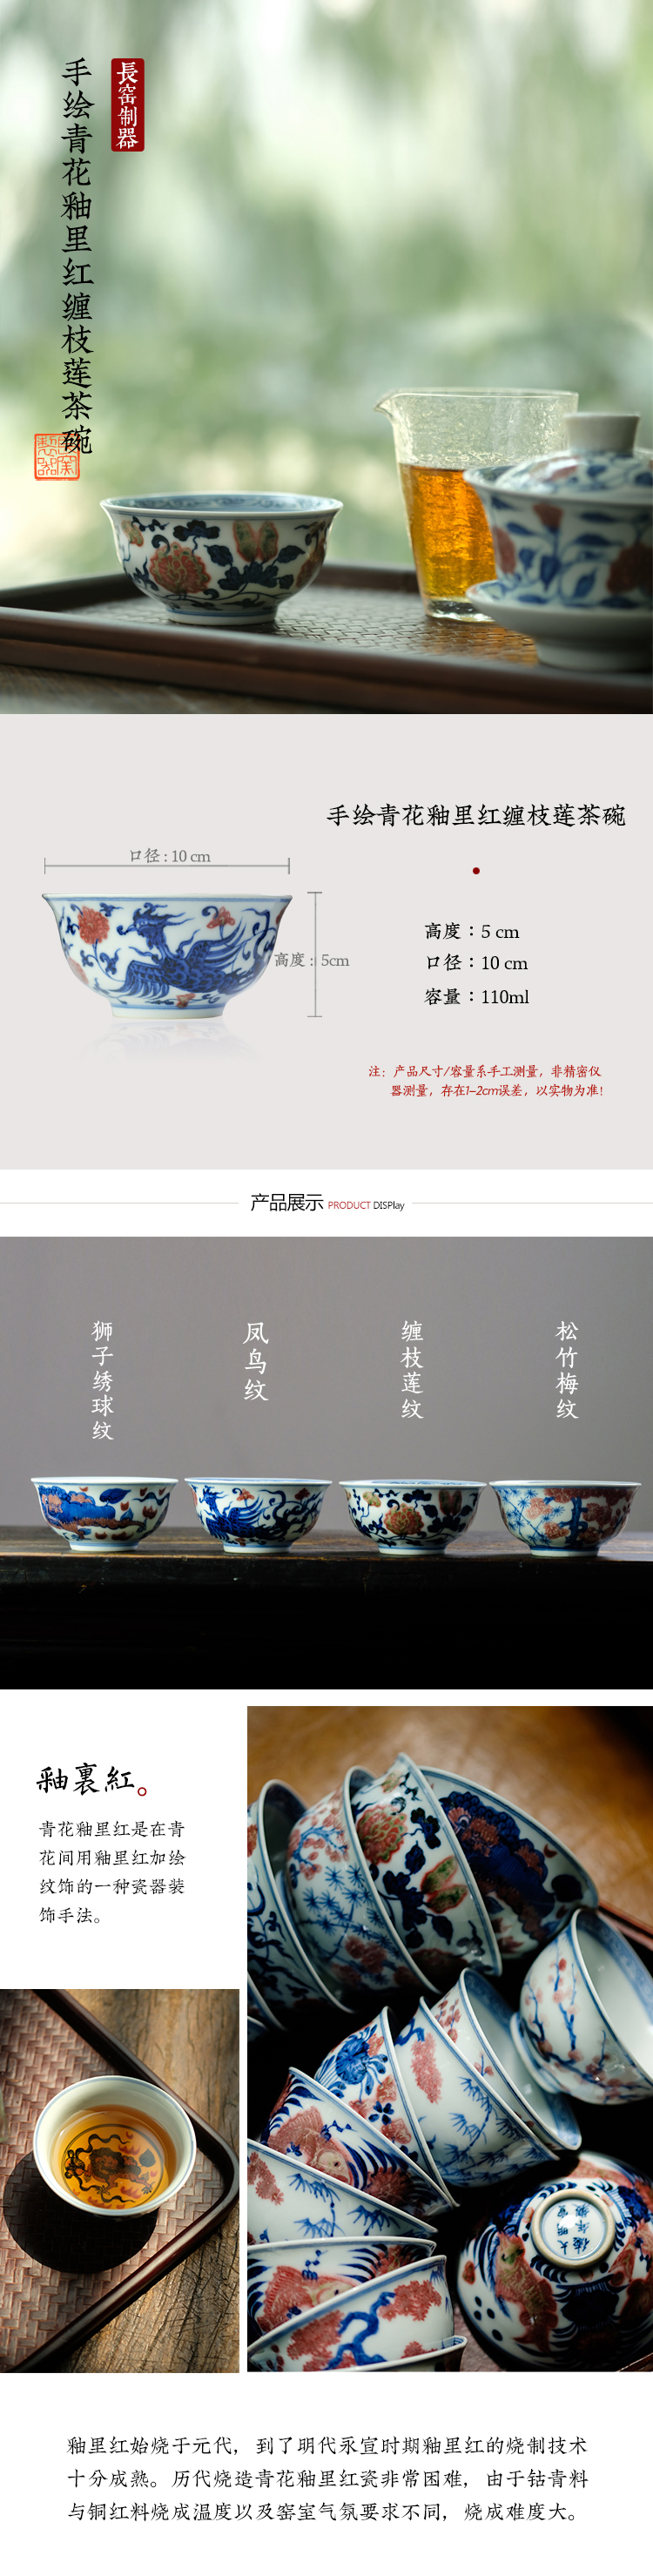 Long up controller of jingdezhen ceramic blue and white lotus youligong tangled branches hand - drawn lines small bowl kung fu tea cups